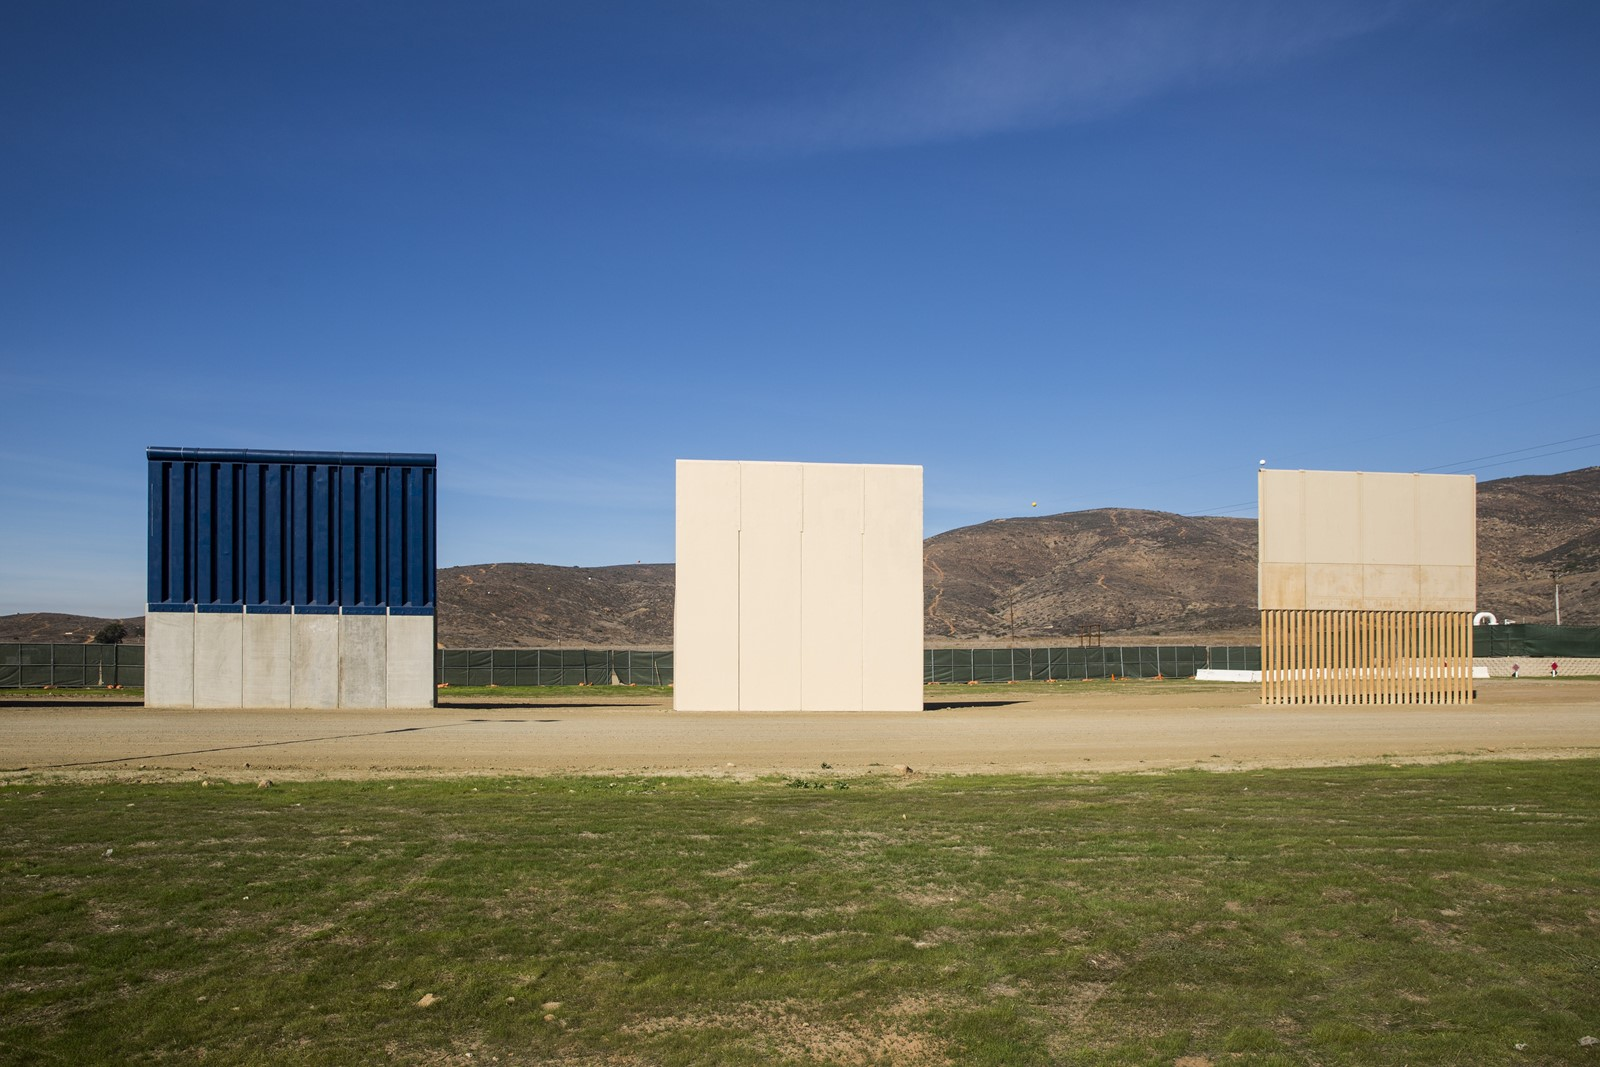 Wall prototypes along the U.S.-Mexico border in February. California has sued over the proposed wall. — Photograph: Kent Nishimura/Los Angeles Times.